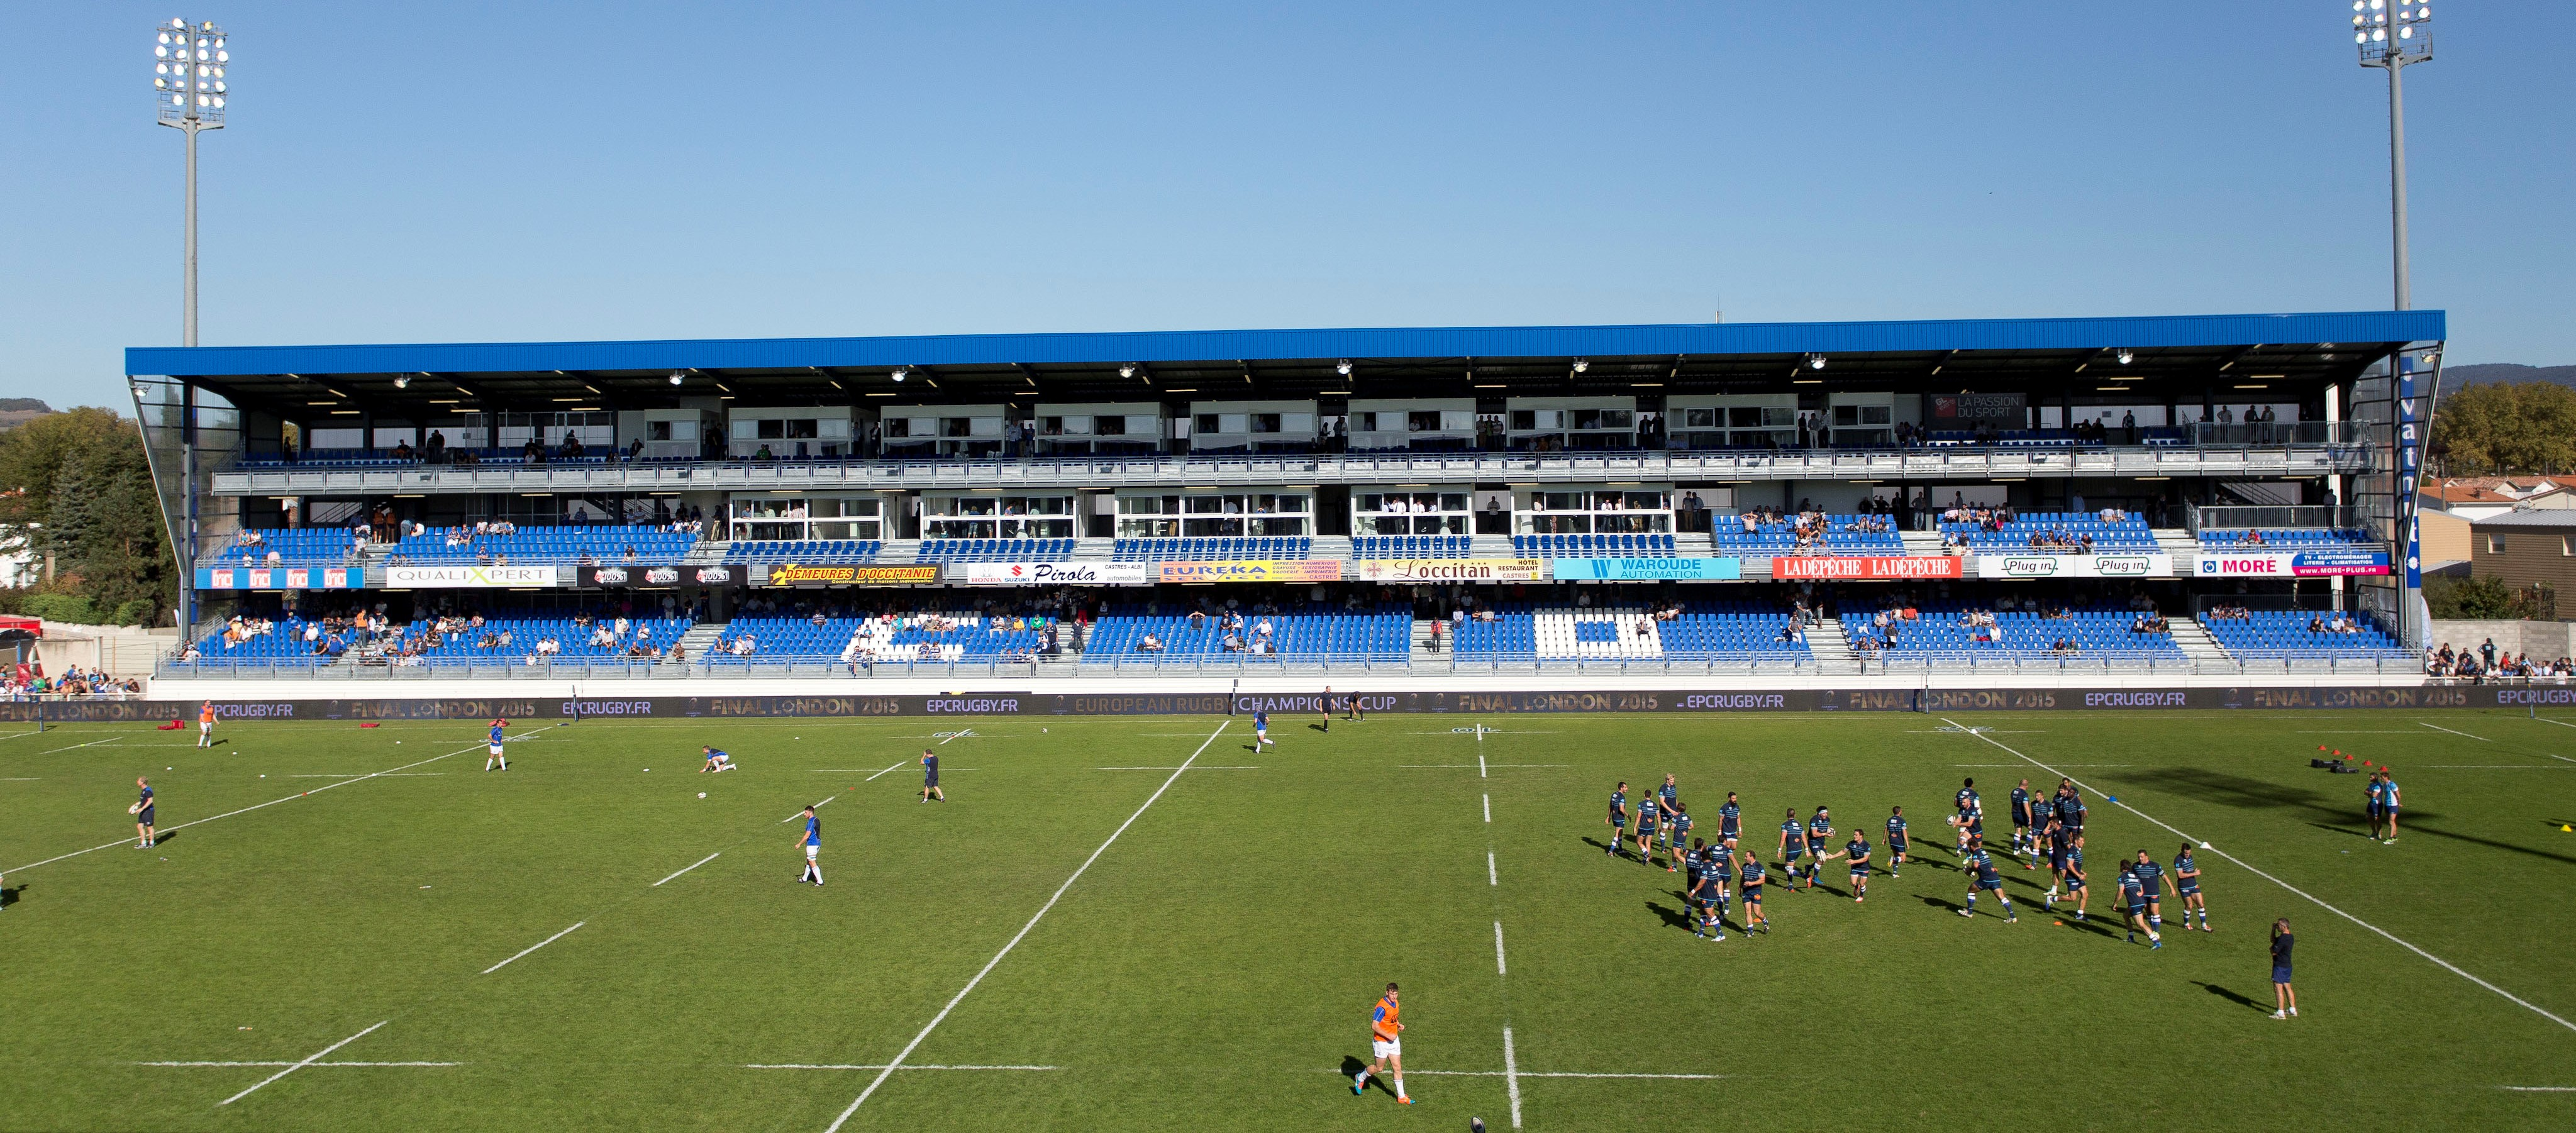 Modular stand of Castres Olympique